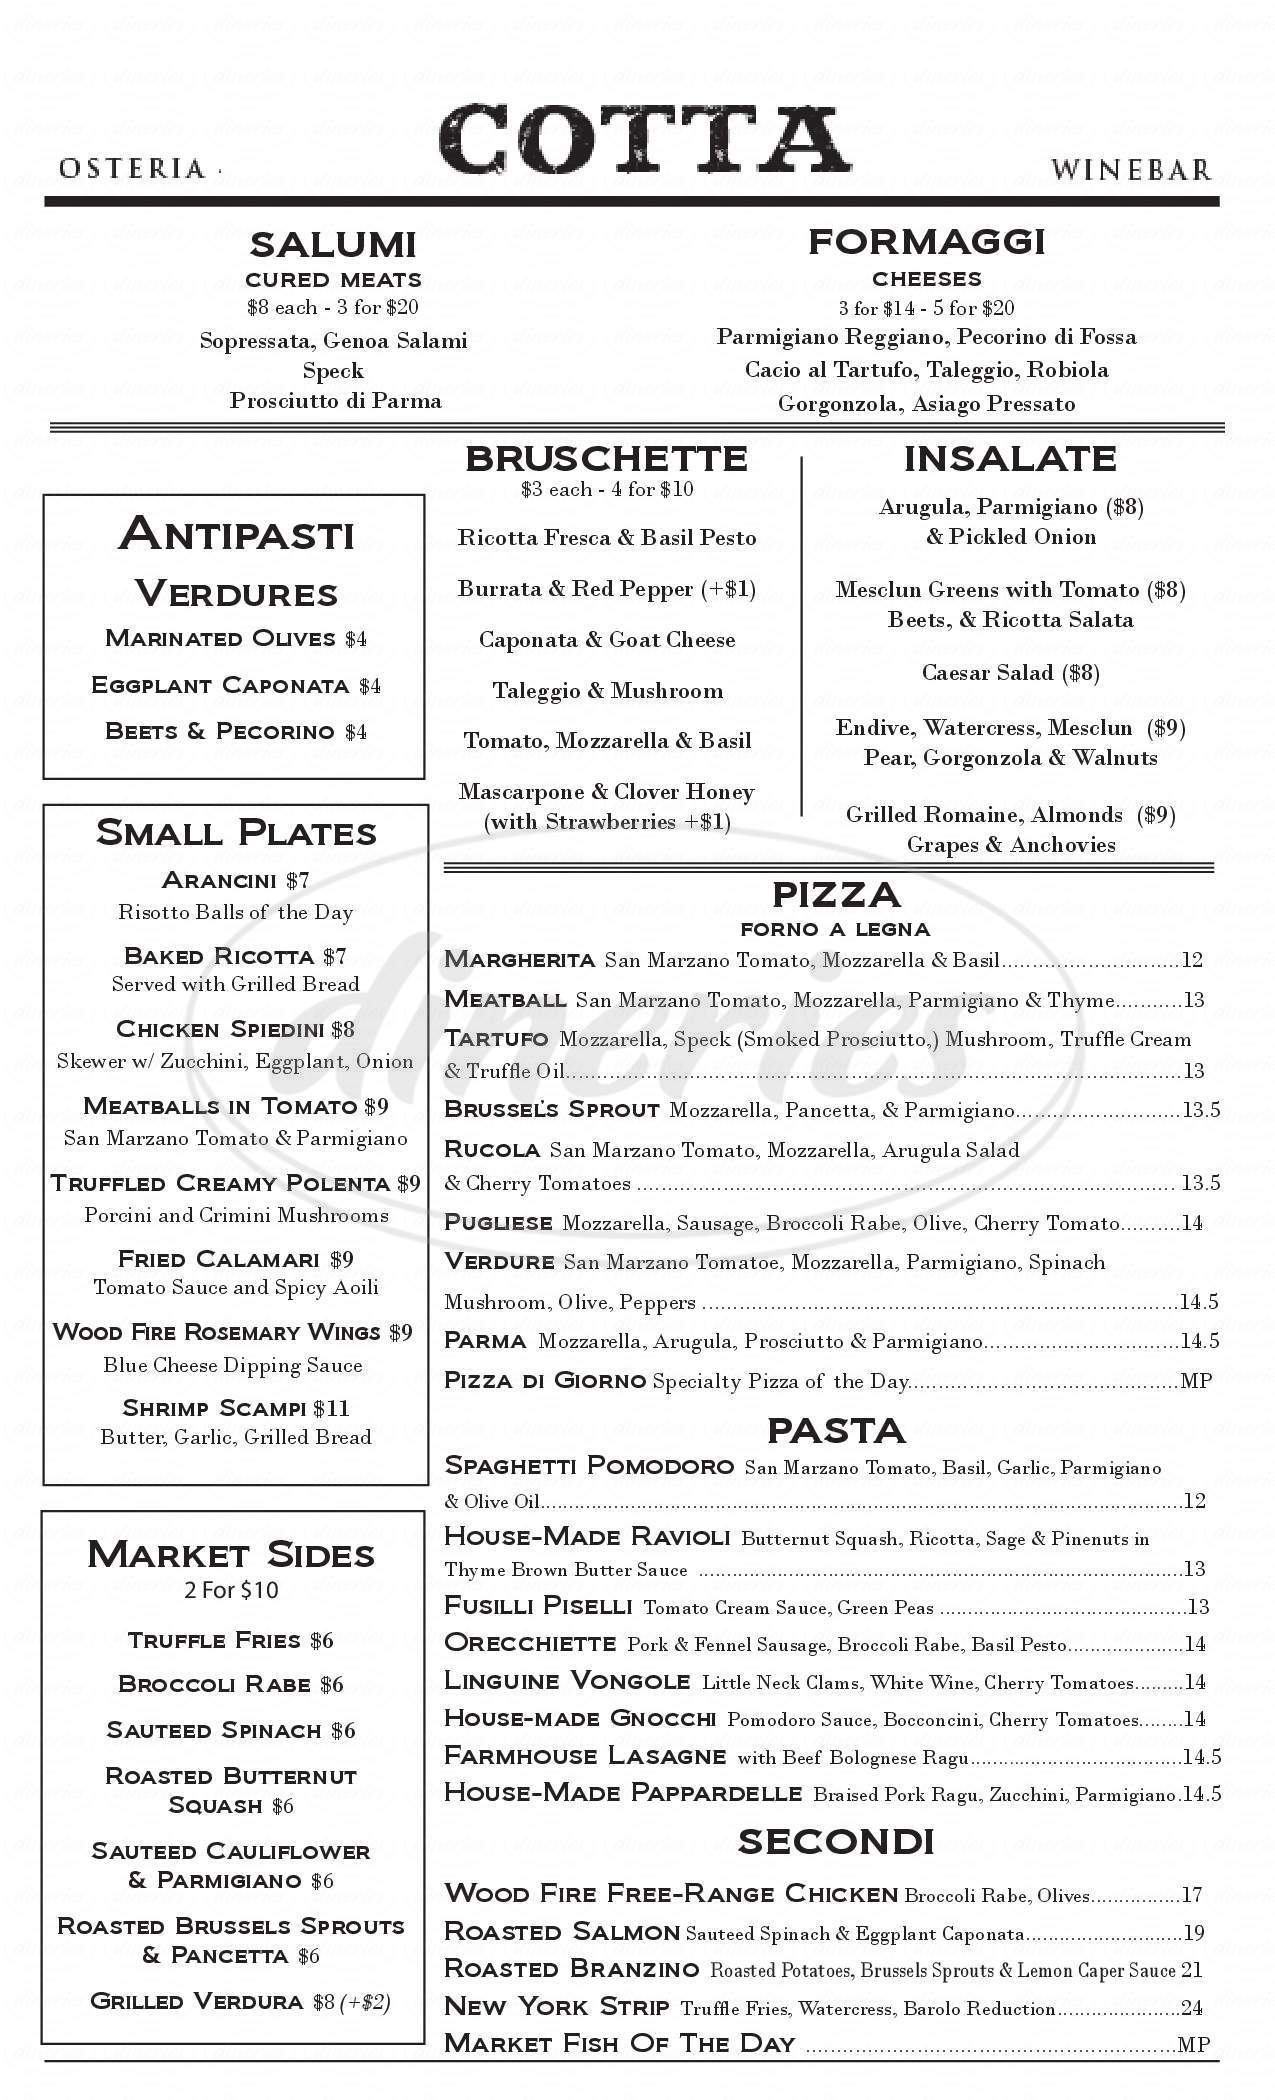 menu for Osteria Cotta